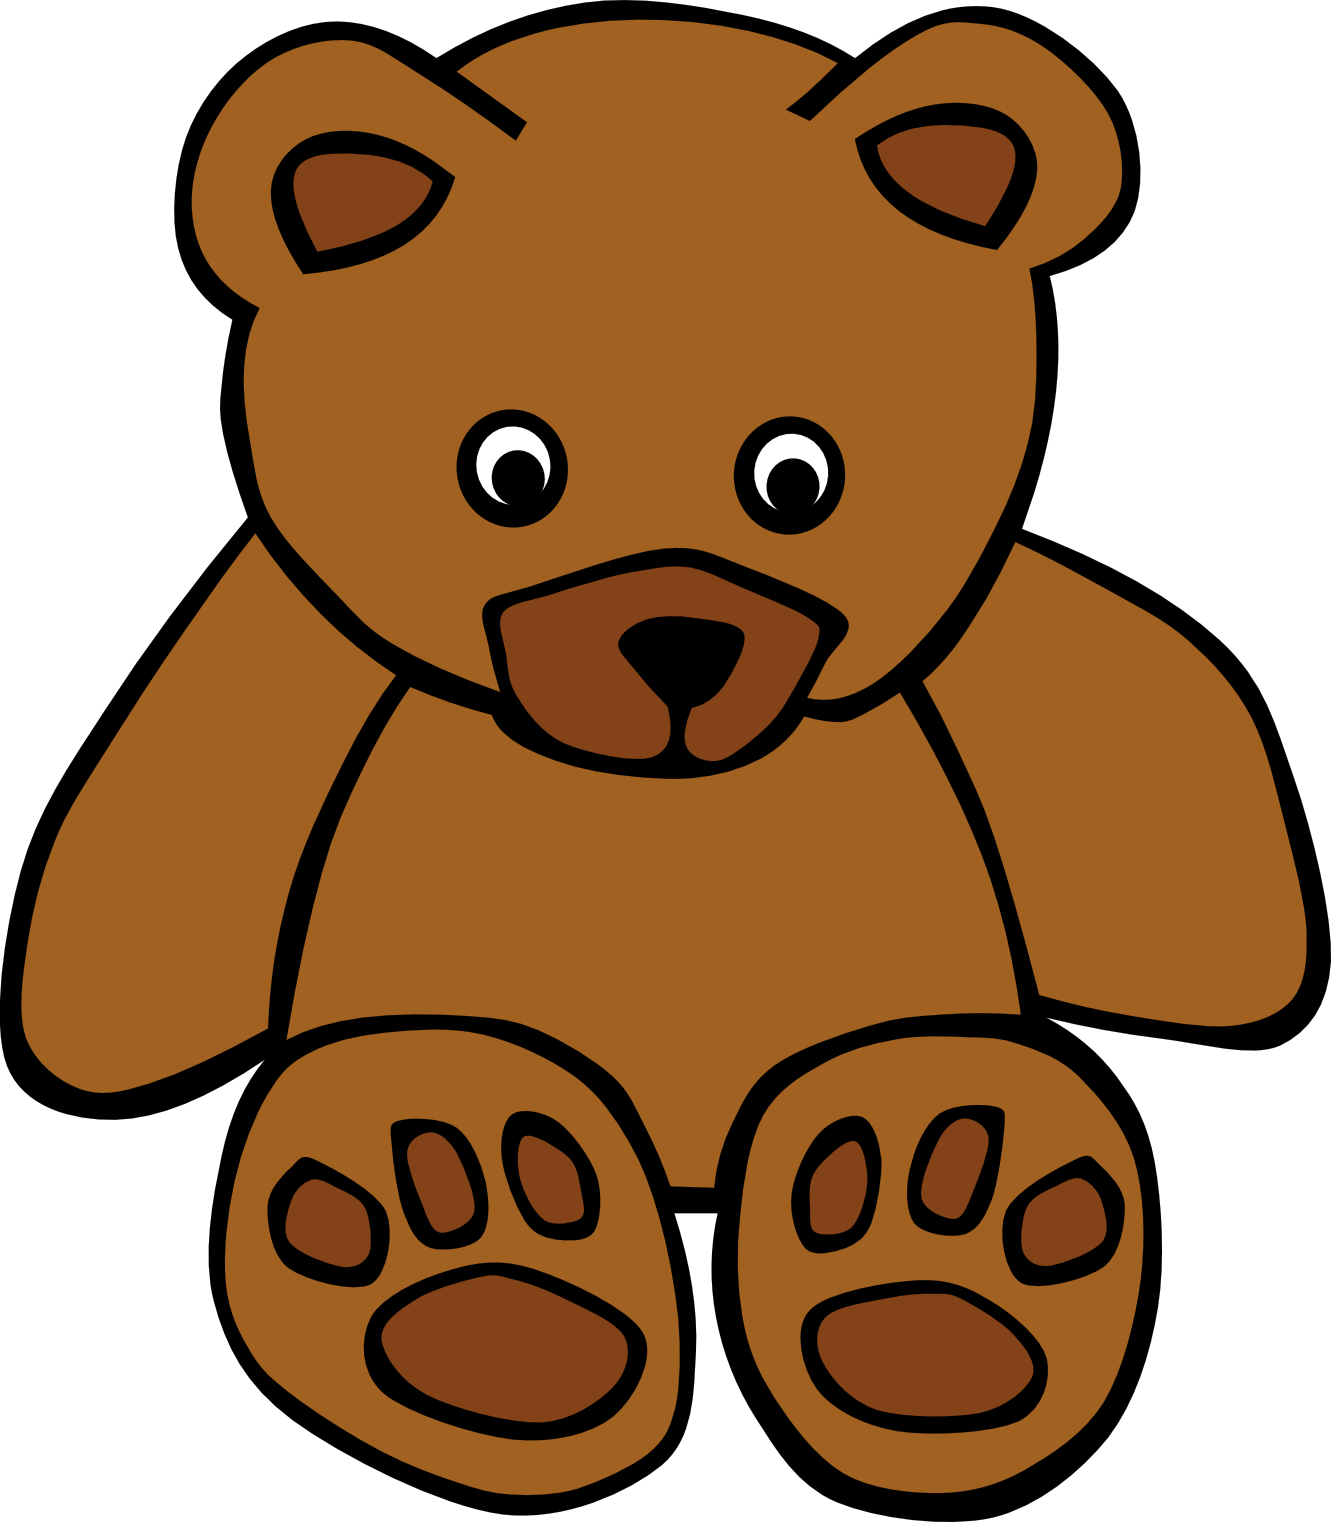 Clipart Animals Free Clipart Images-Clipart animals free clipart images-11